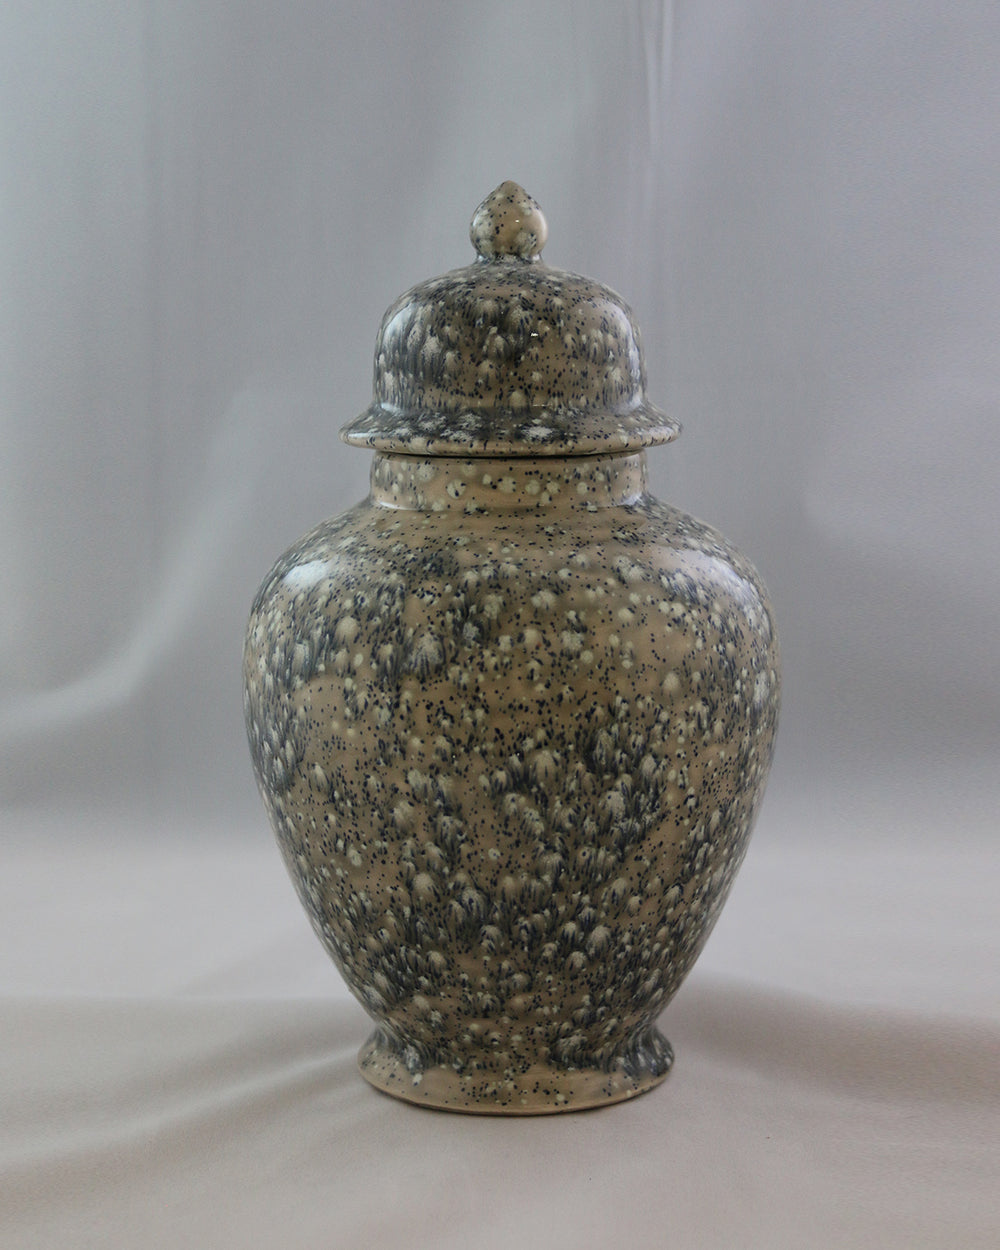 Hancrafted Ceramic Urn - Cosmic - Large